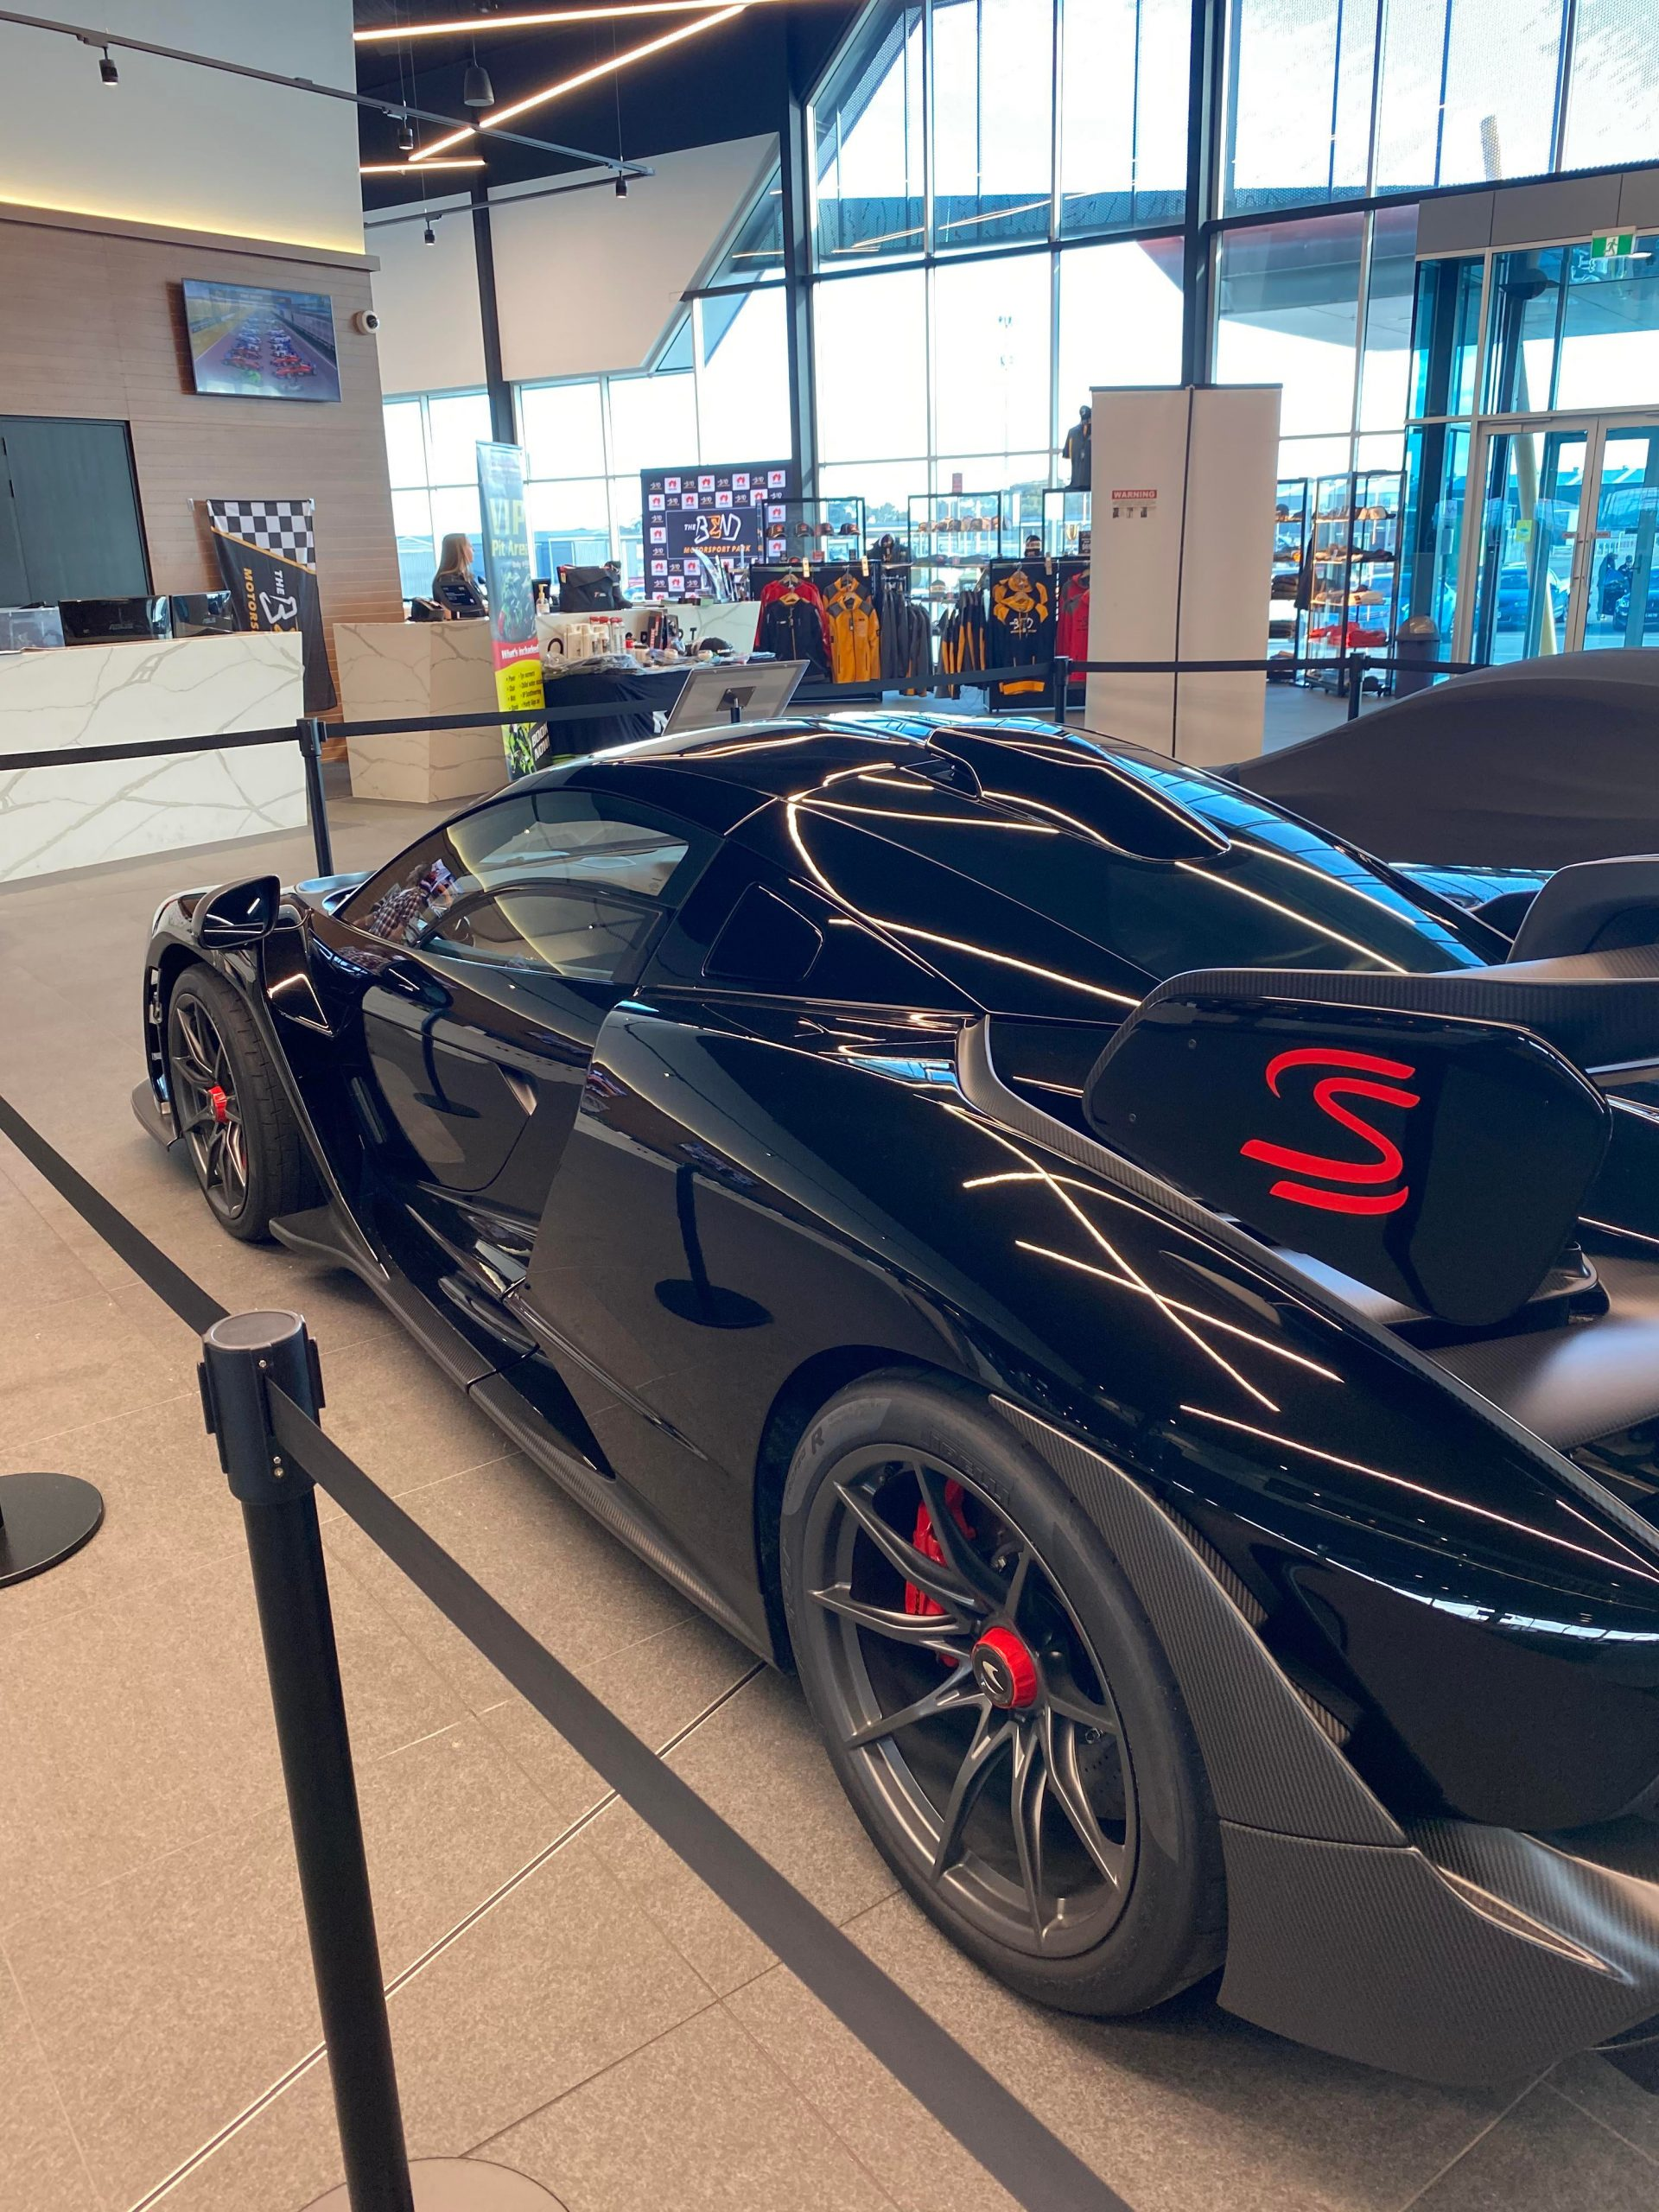 McLaren Senna at the bend Motorsport park